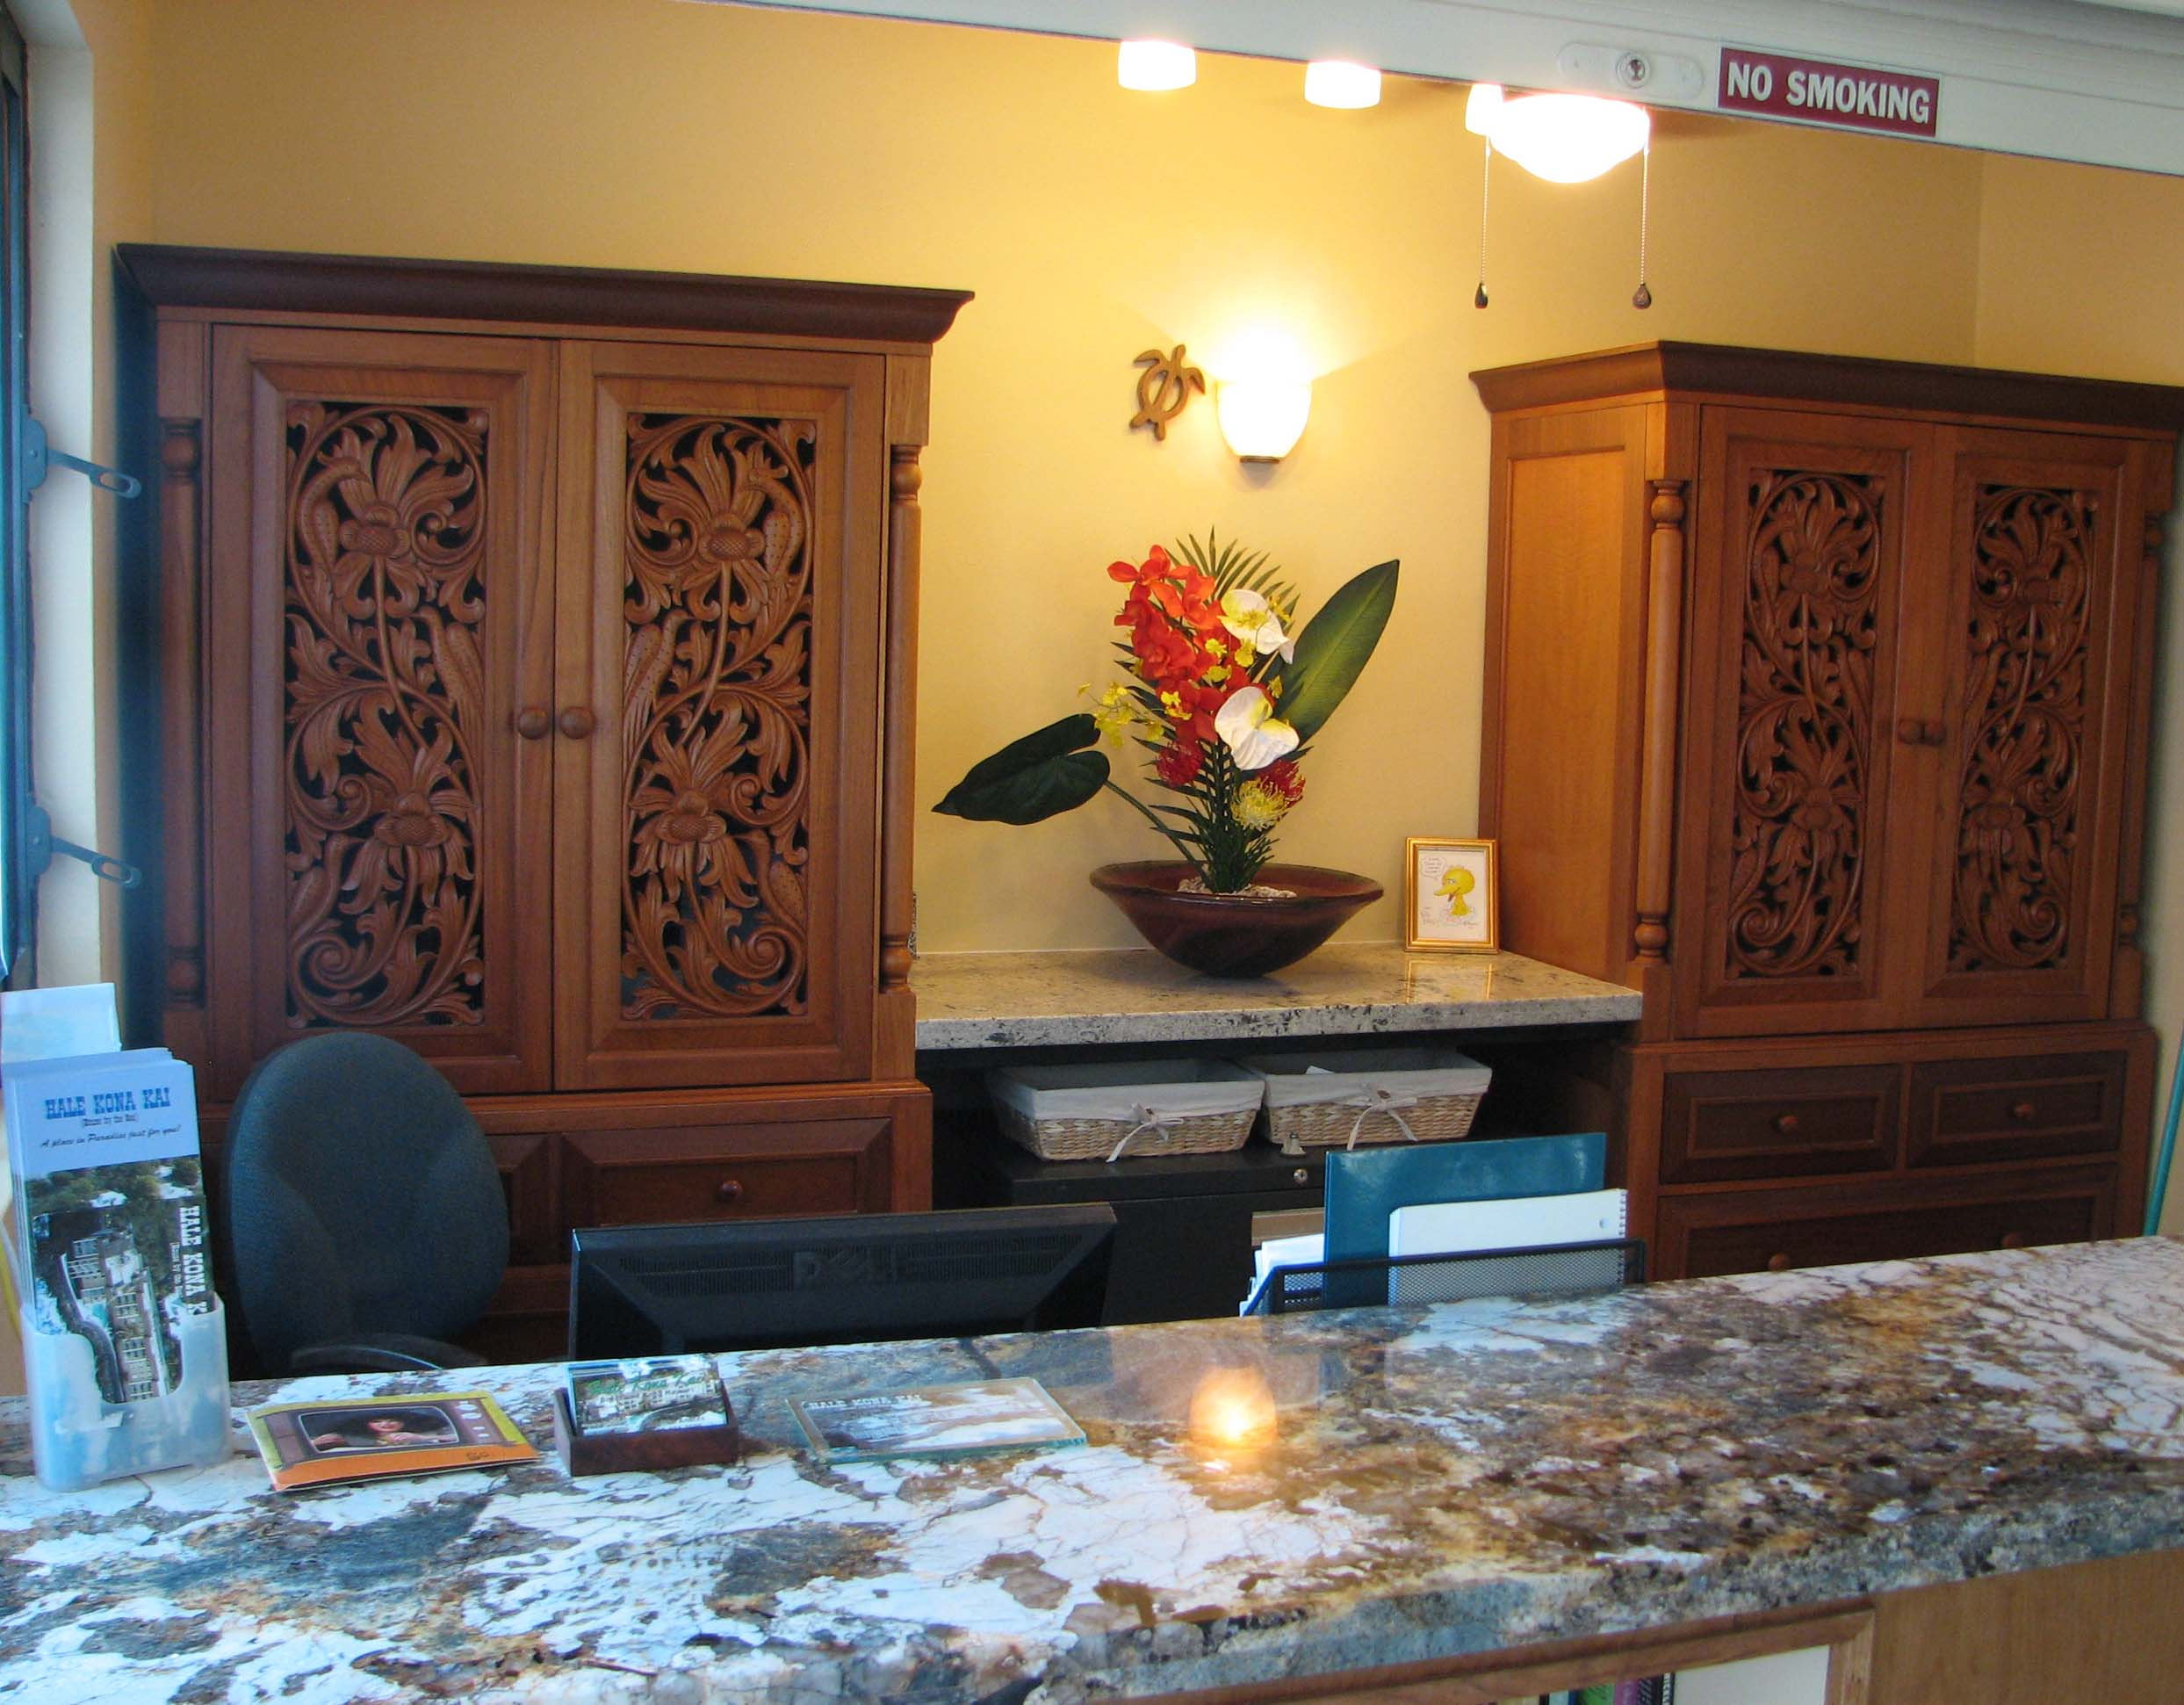 Our office is right next door at Hale Kona Kai and we are there Monday - Friday to greet you, share stories and print boarding passes... we even have a library of books for your reading pleasure.